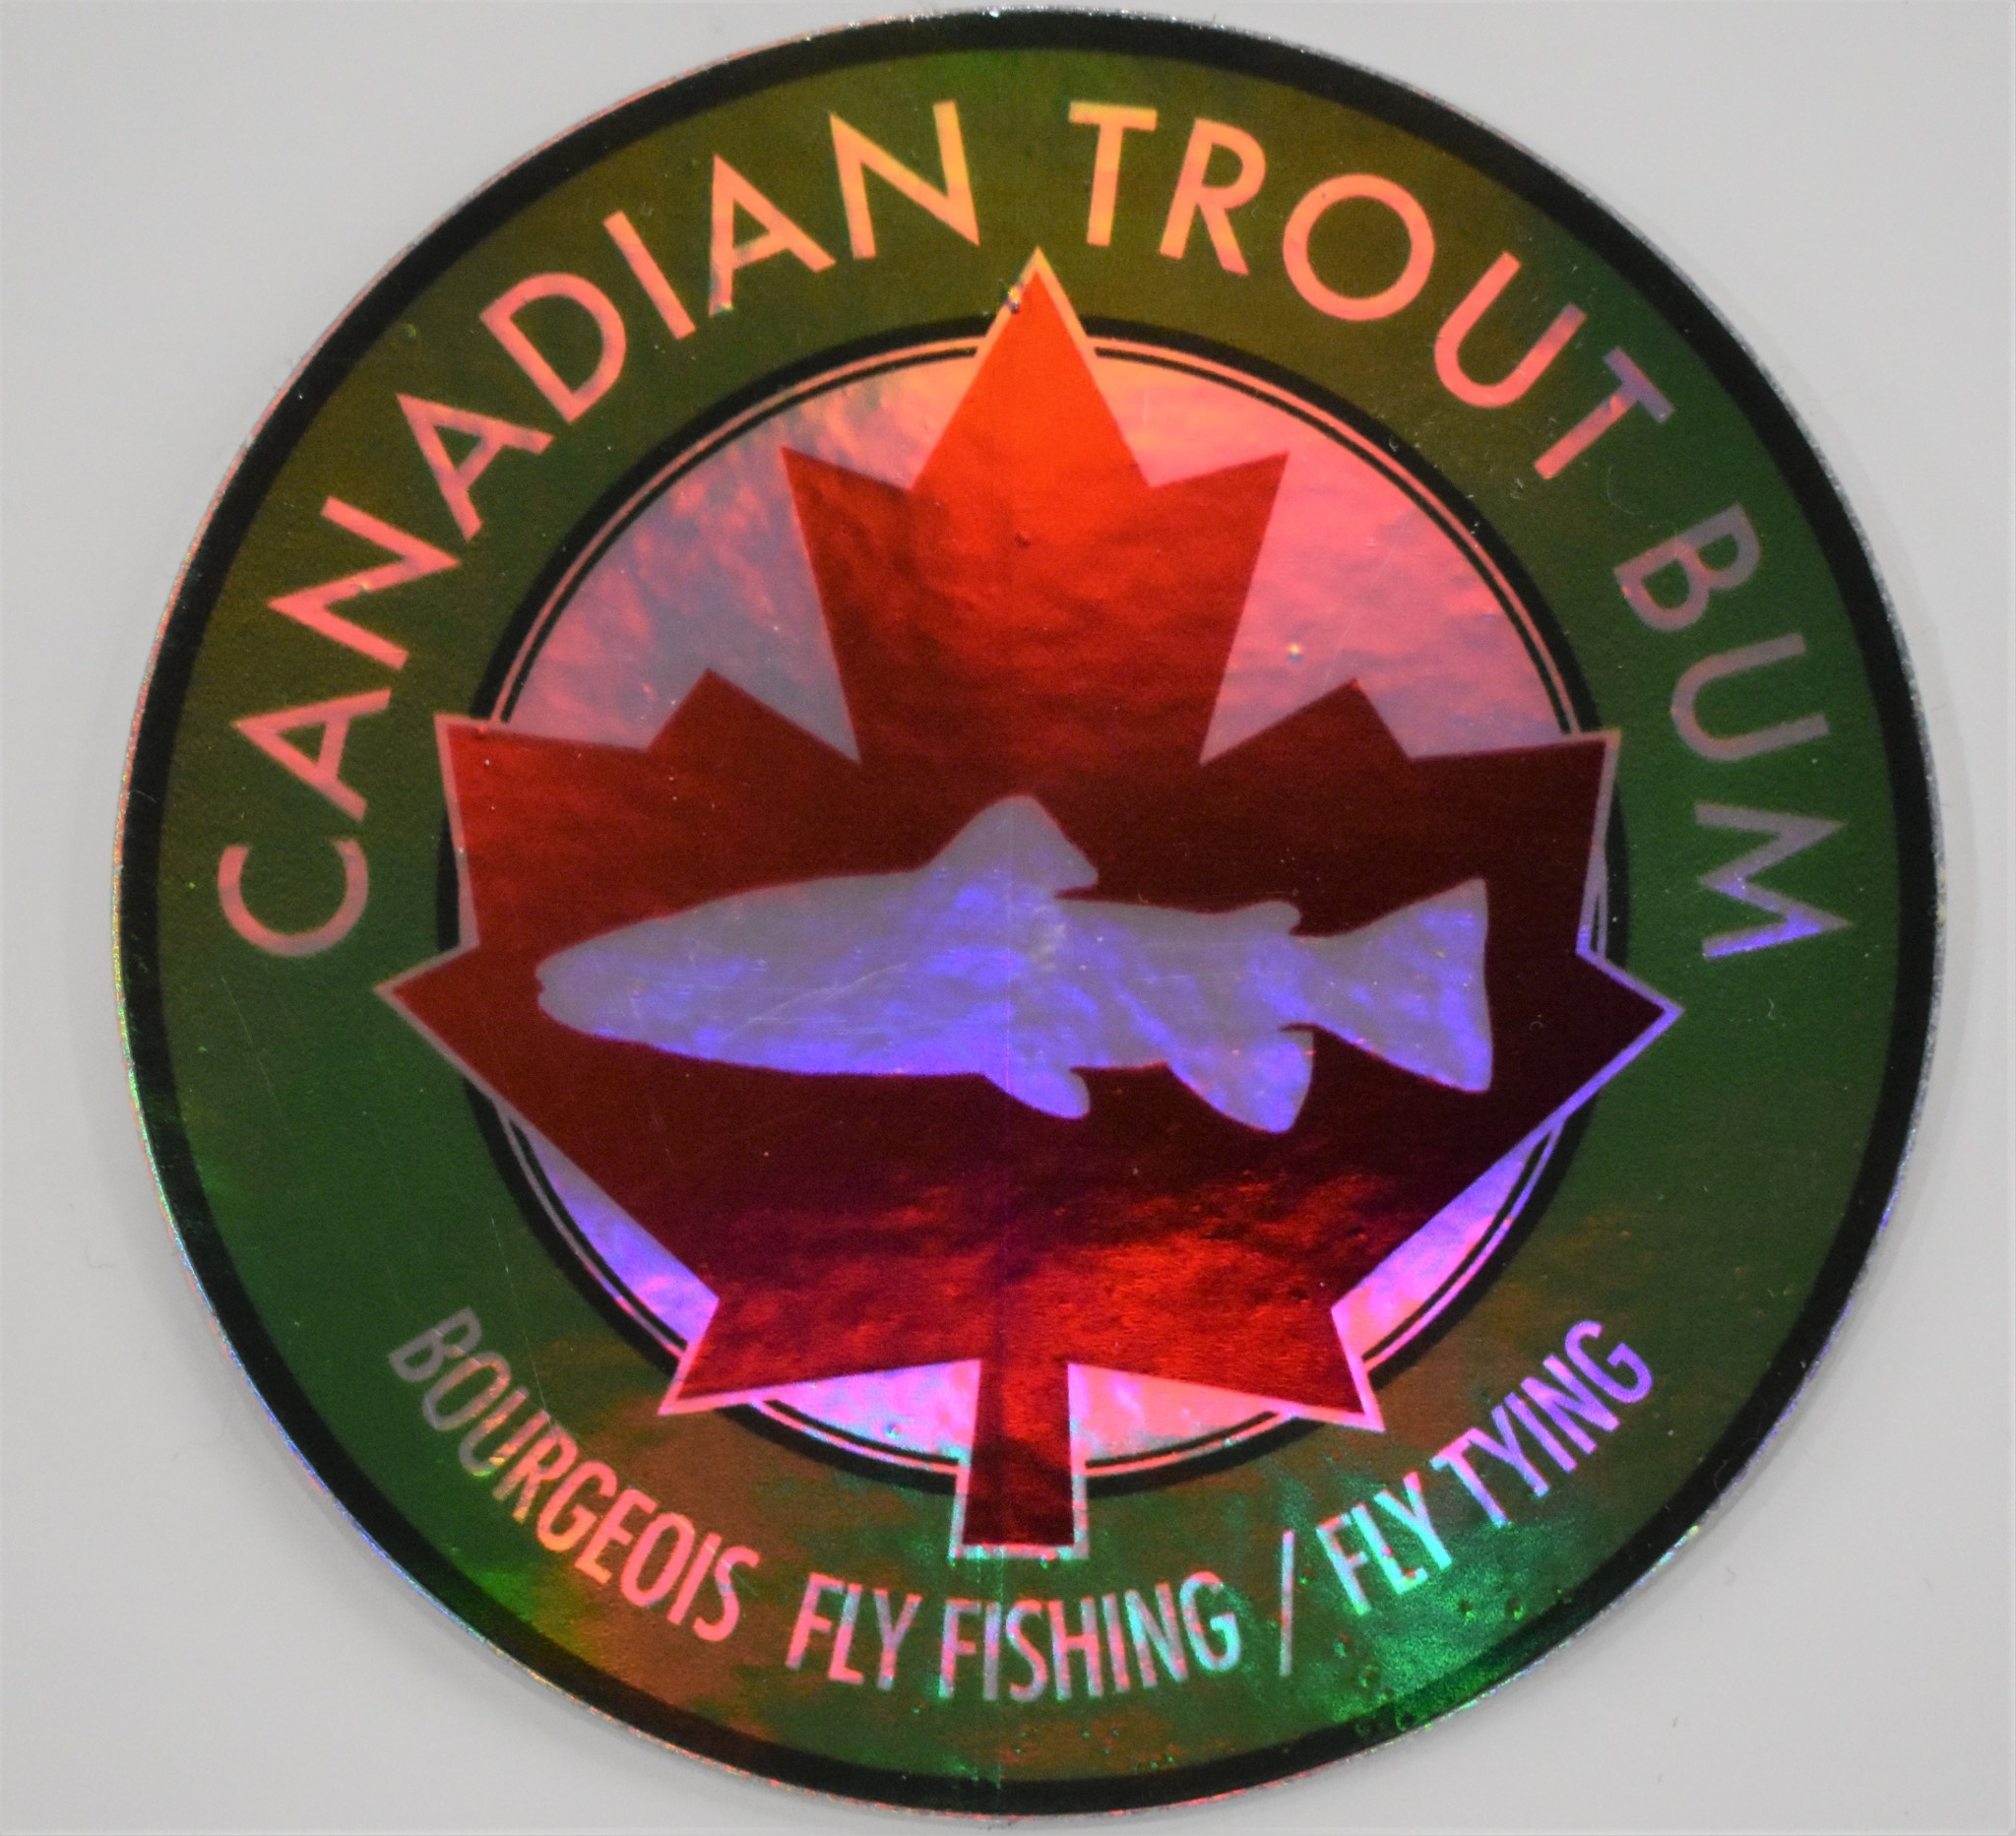 CANADIAN TROUT BUM / AMERICAN TROUT BUM Canadian Trout Bum B Fly Fishing/Tying Circle Decal